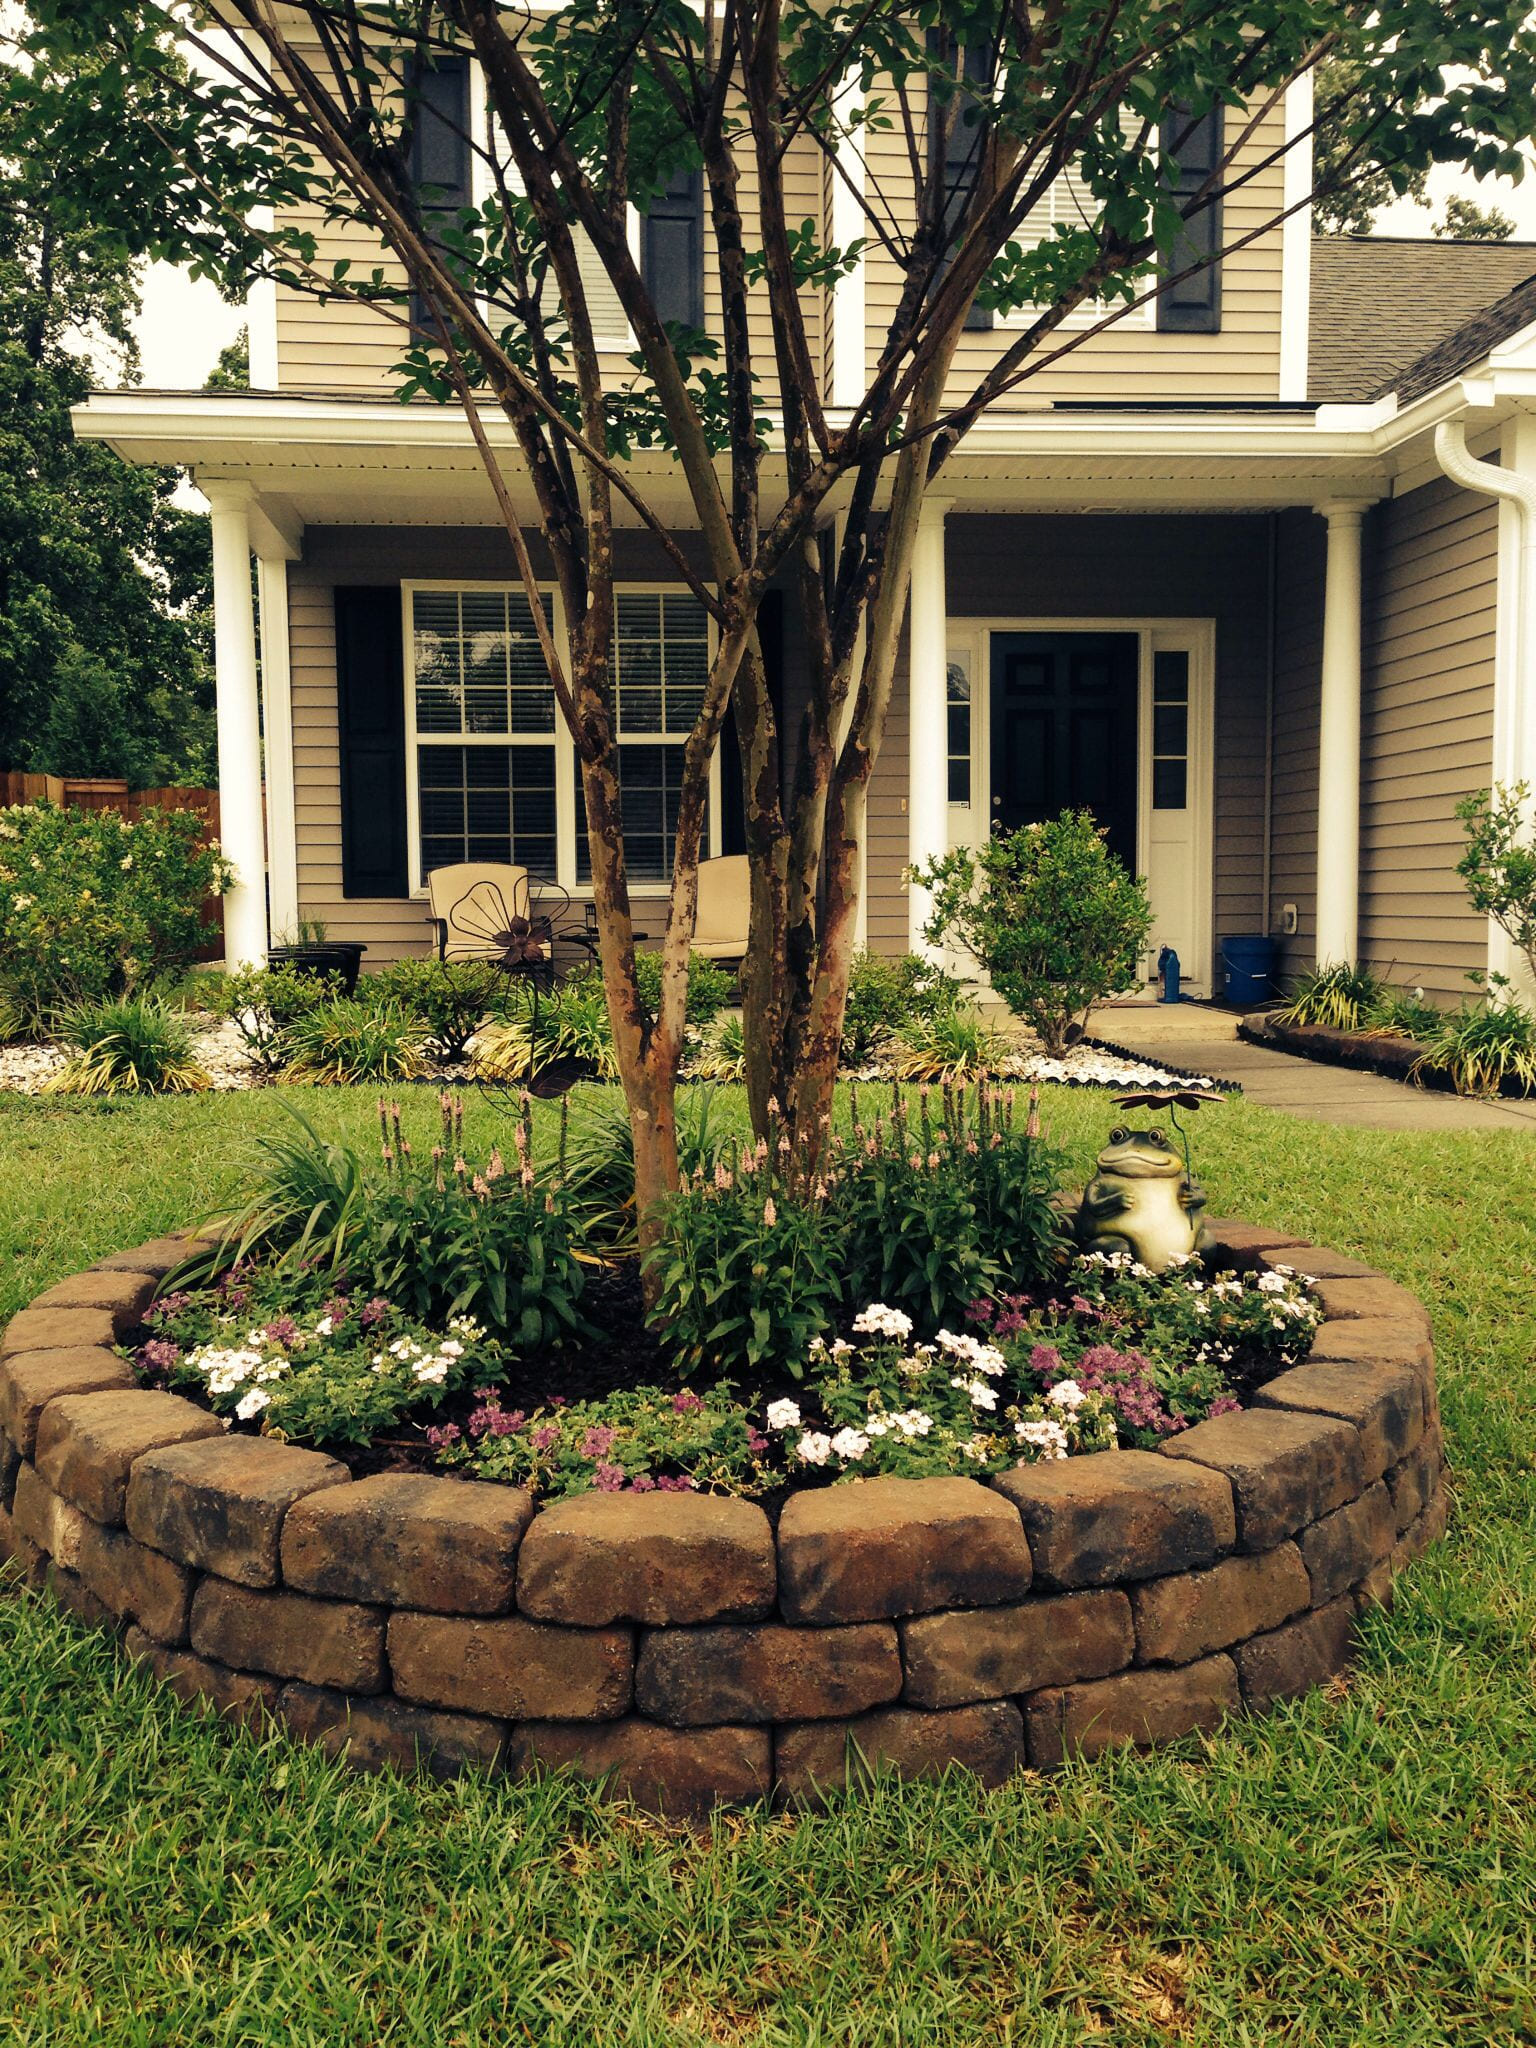 Simphome.com beautiful front yard tree landscaping ideas gallery front yard for 2020